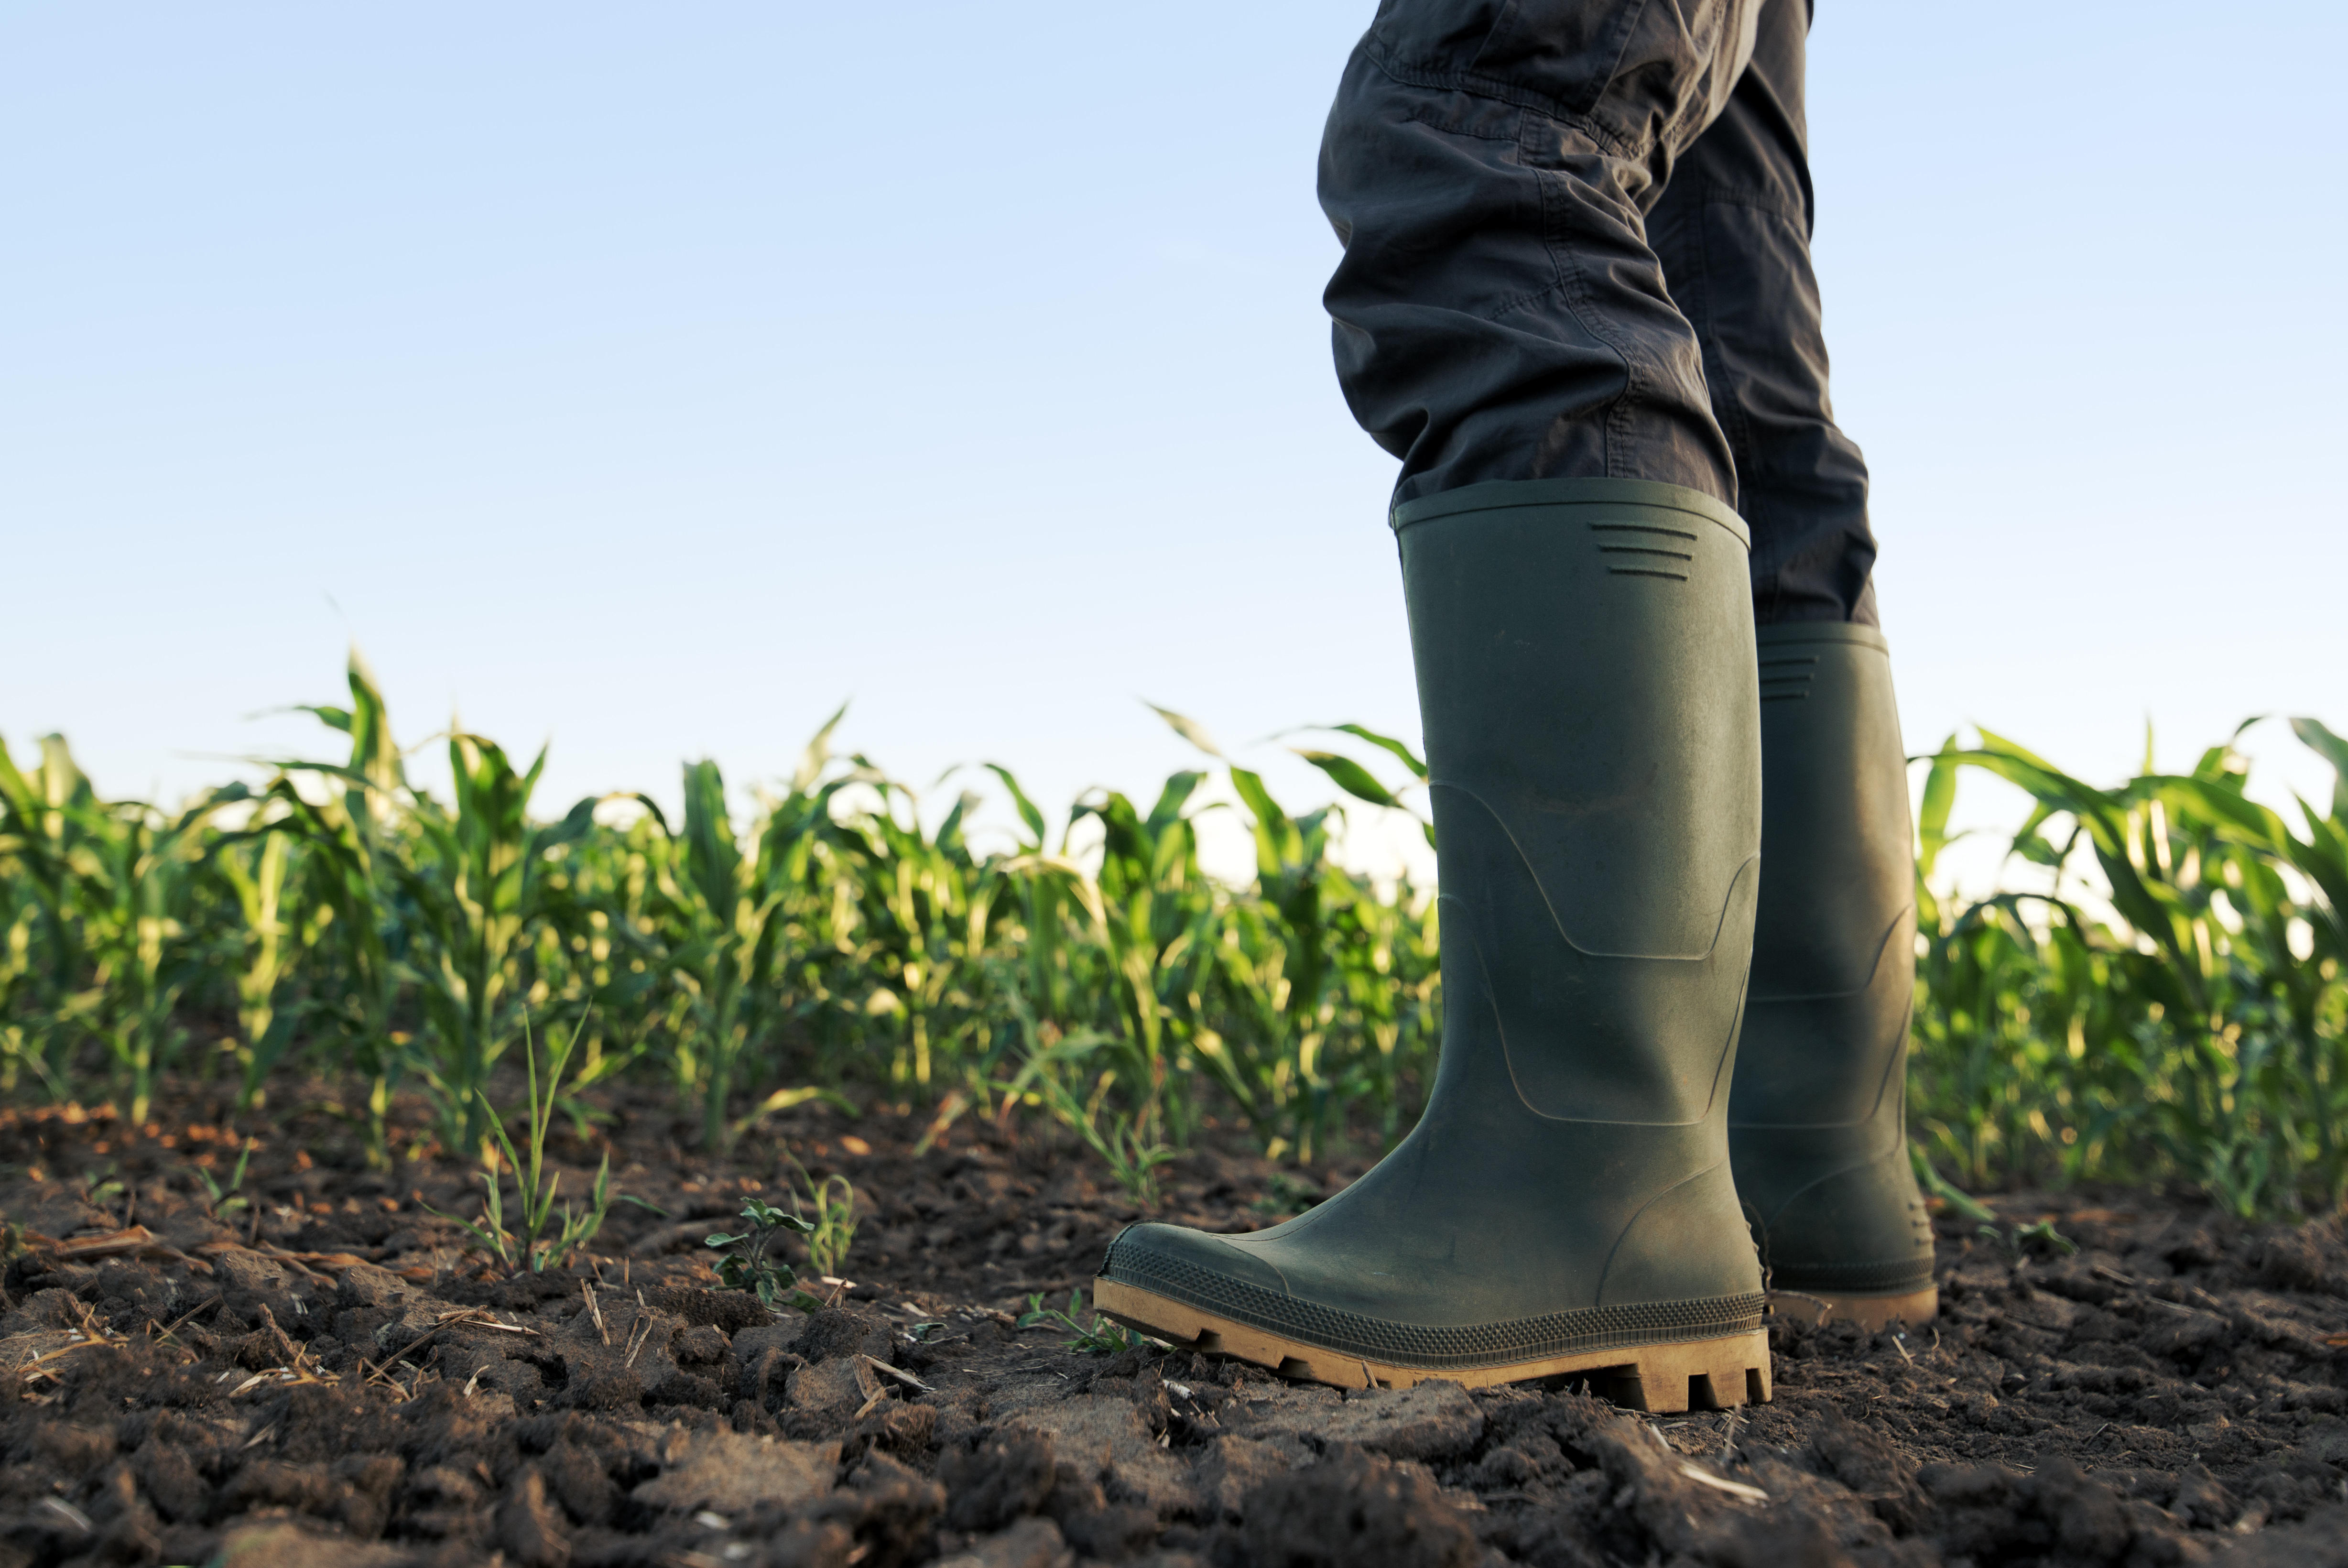 Farmers in America are facing an economic and mental health crisis